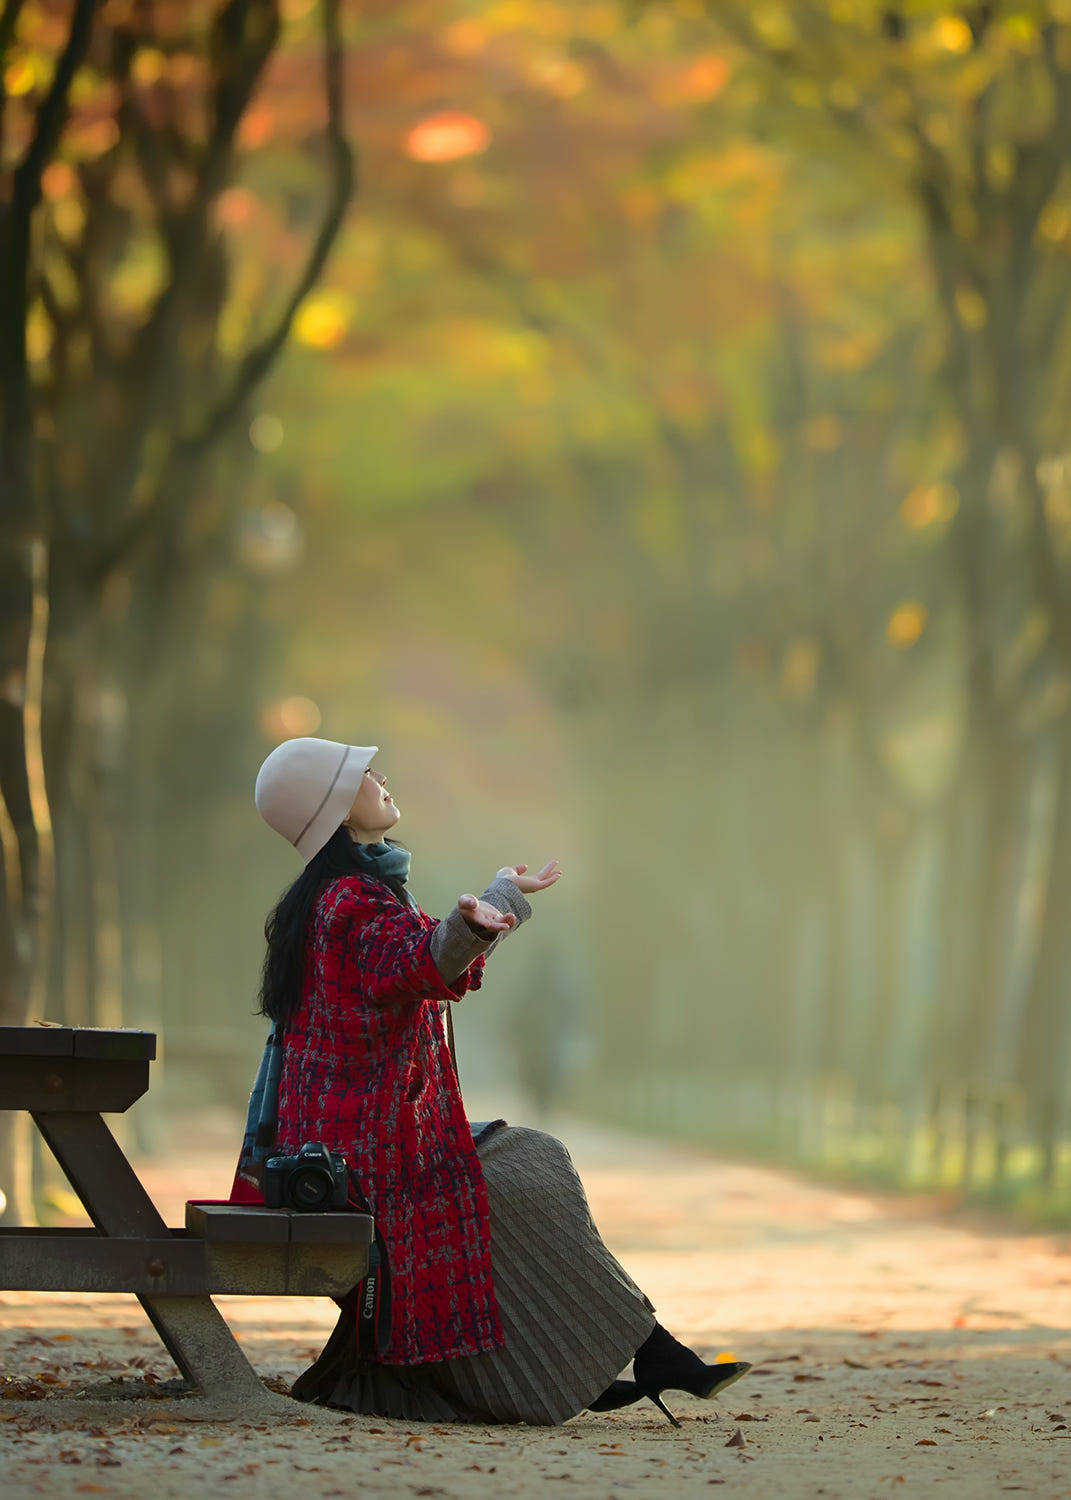 Autumn and foliage .. by Smoothy .